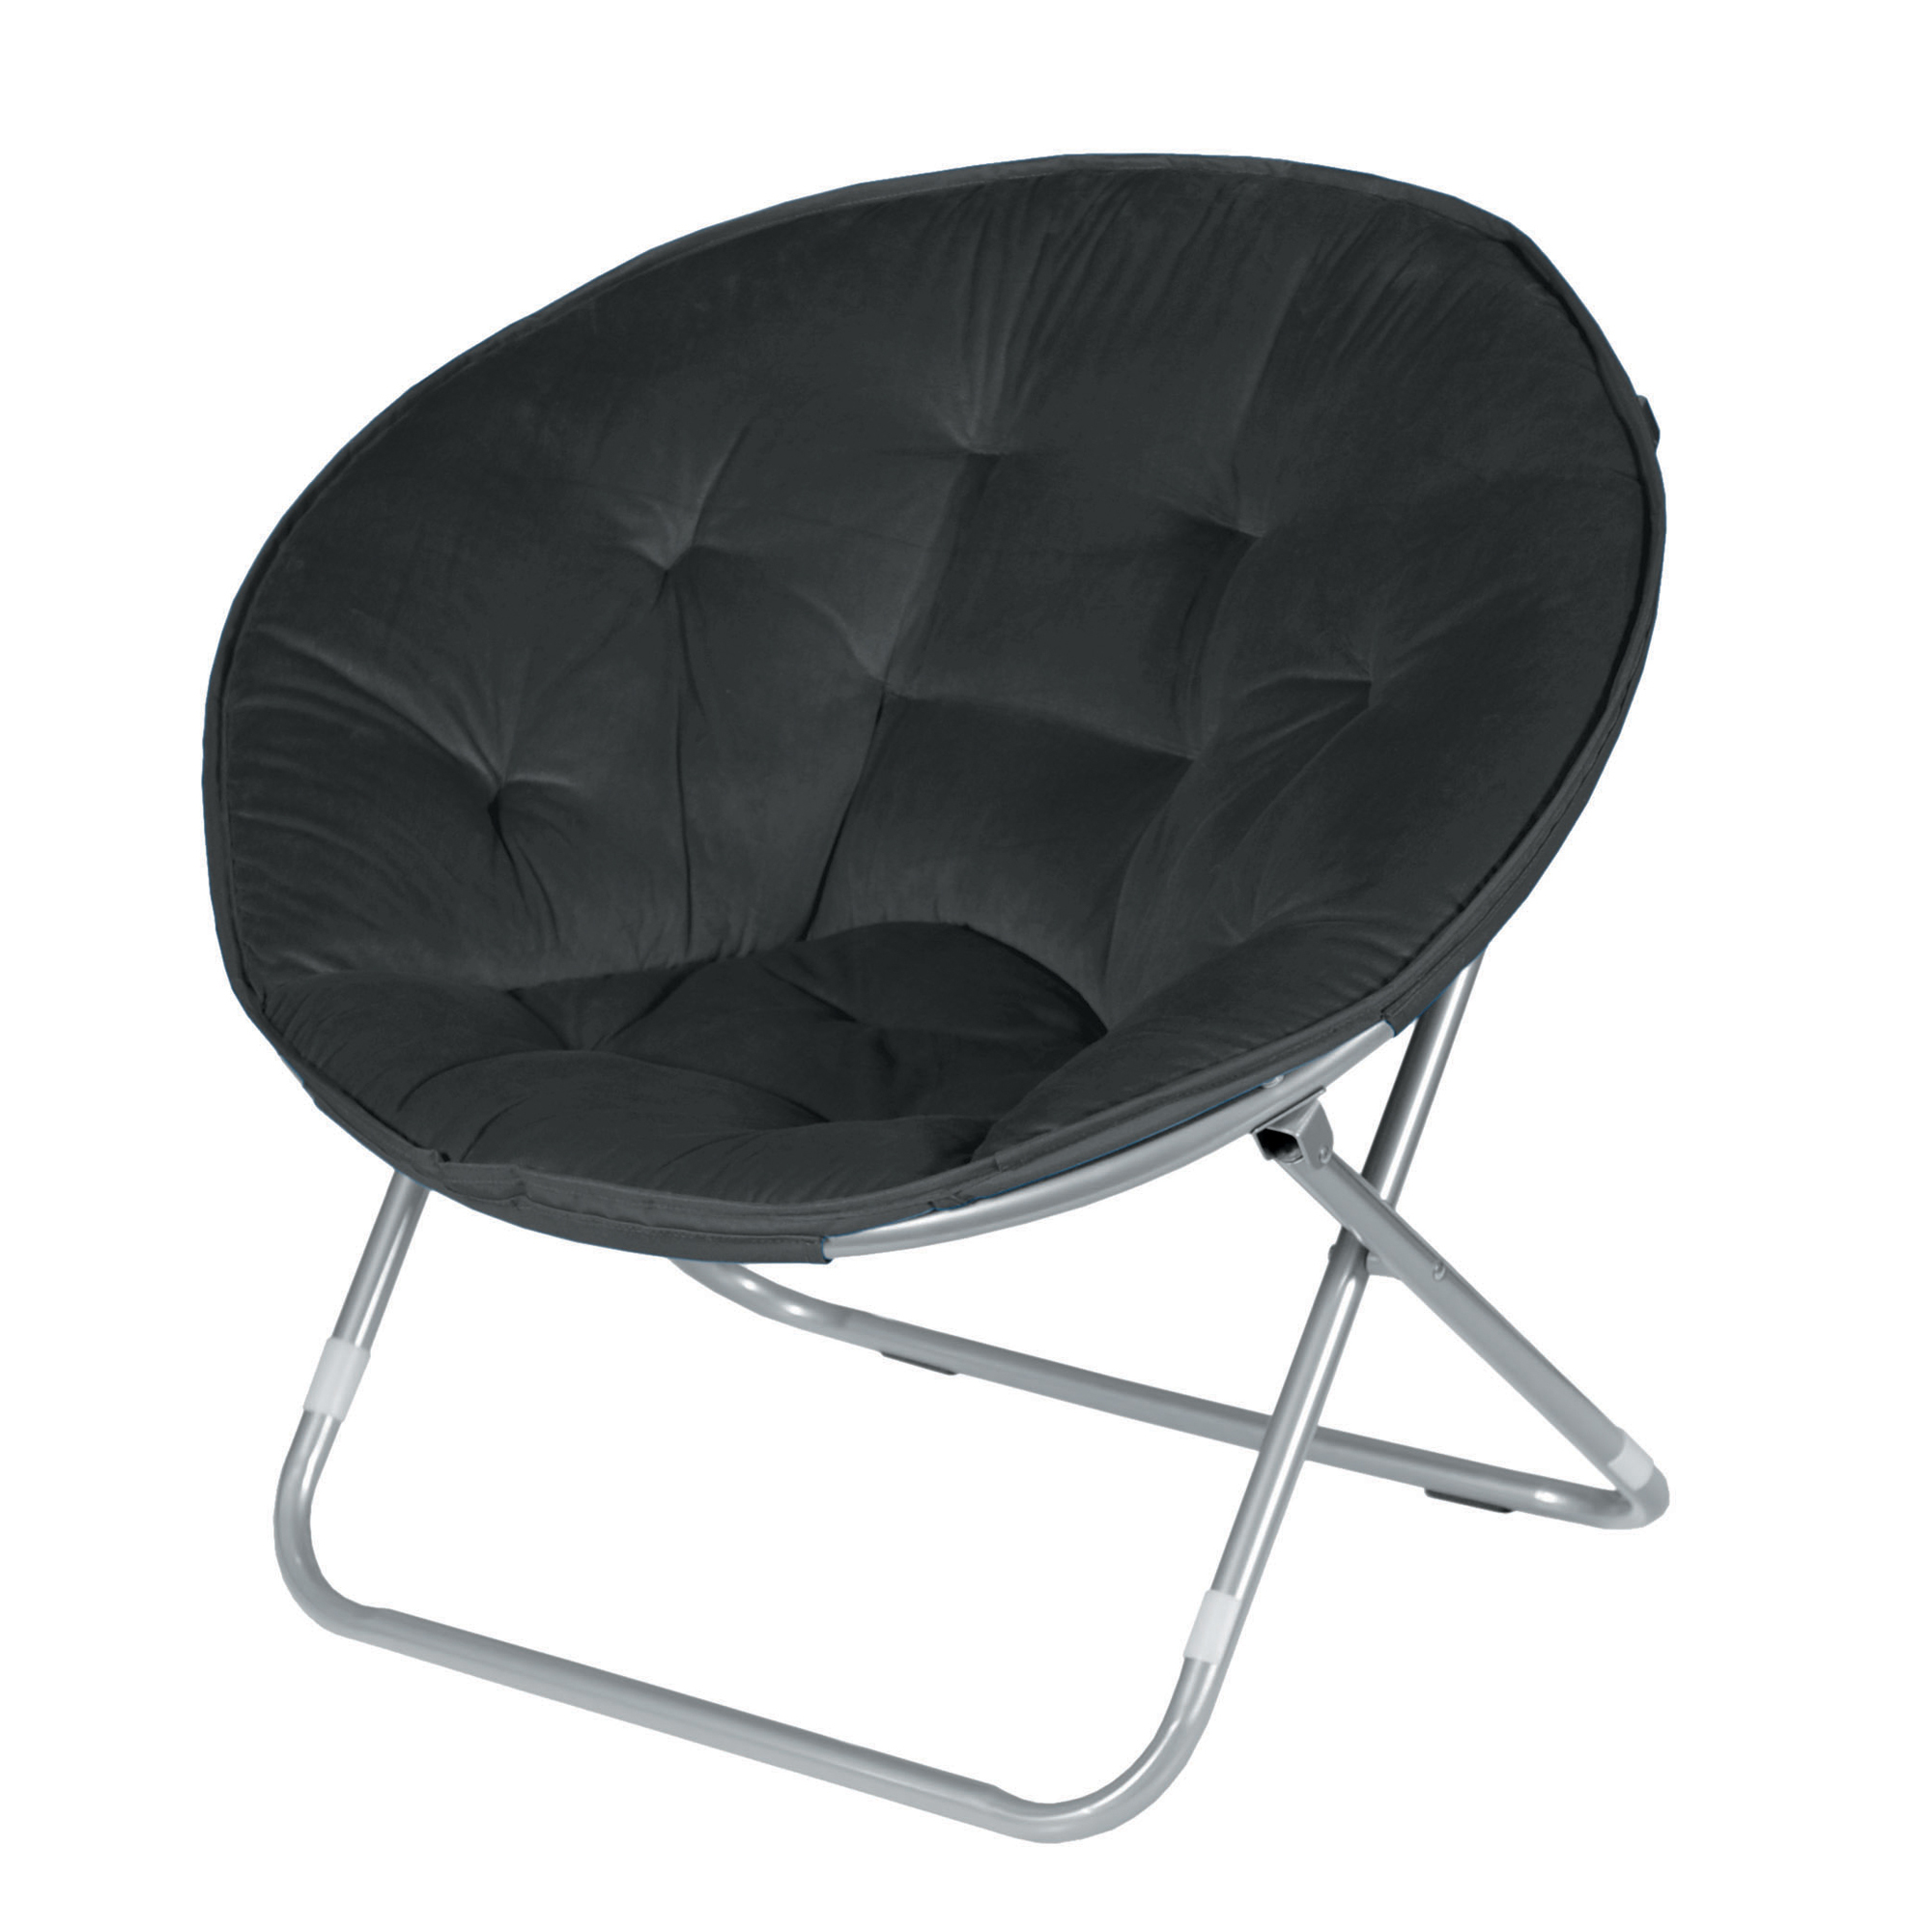 Picture of: black saucer chair